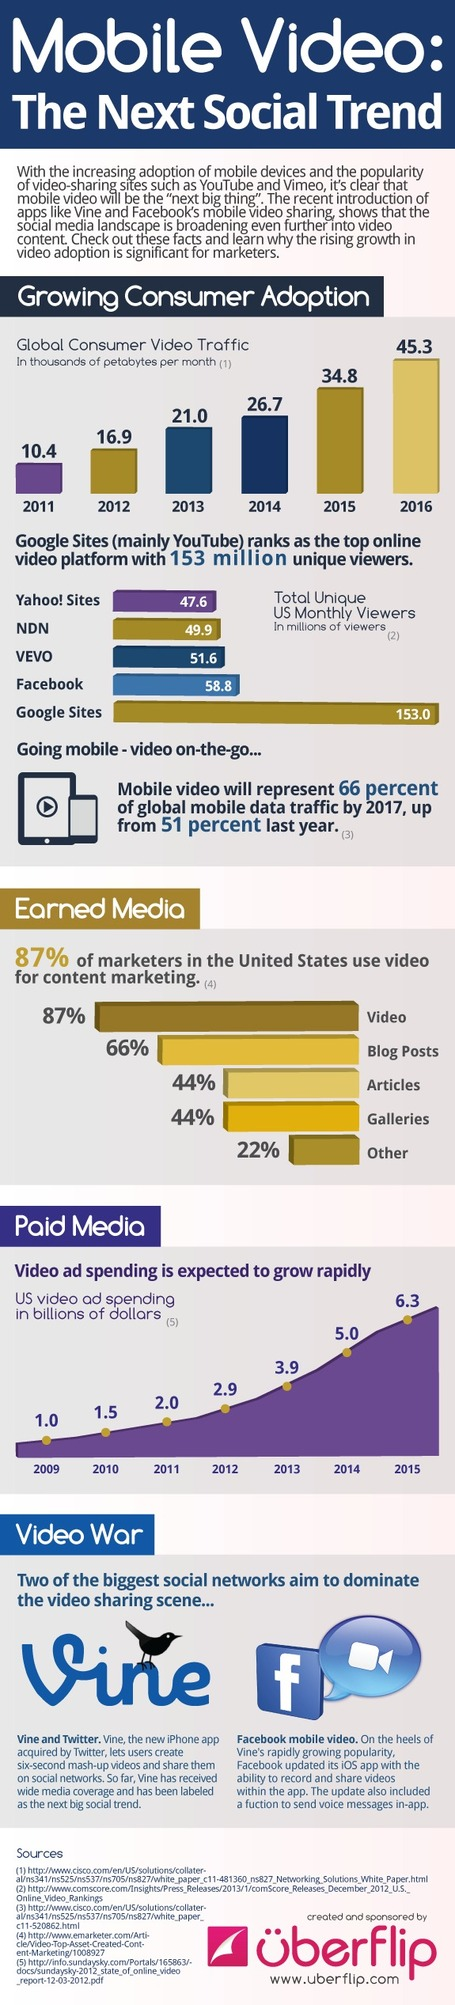 Is Mobile Video The Next Big Thing In Social Media? [INFOGRAPHIC] | Mobile Marketing Strategy and beyond | Scoop.it